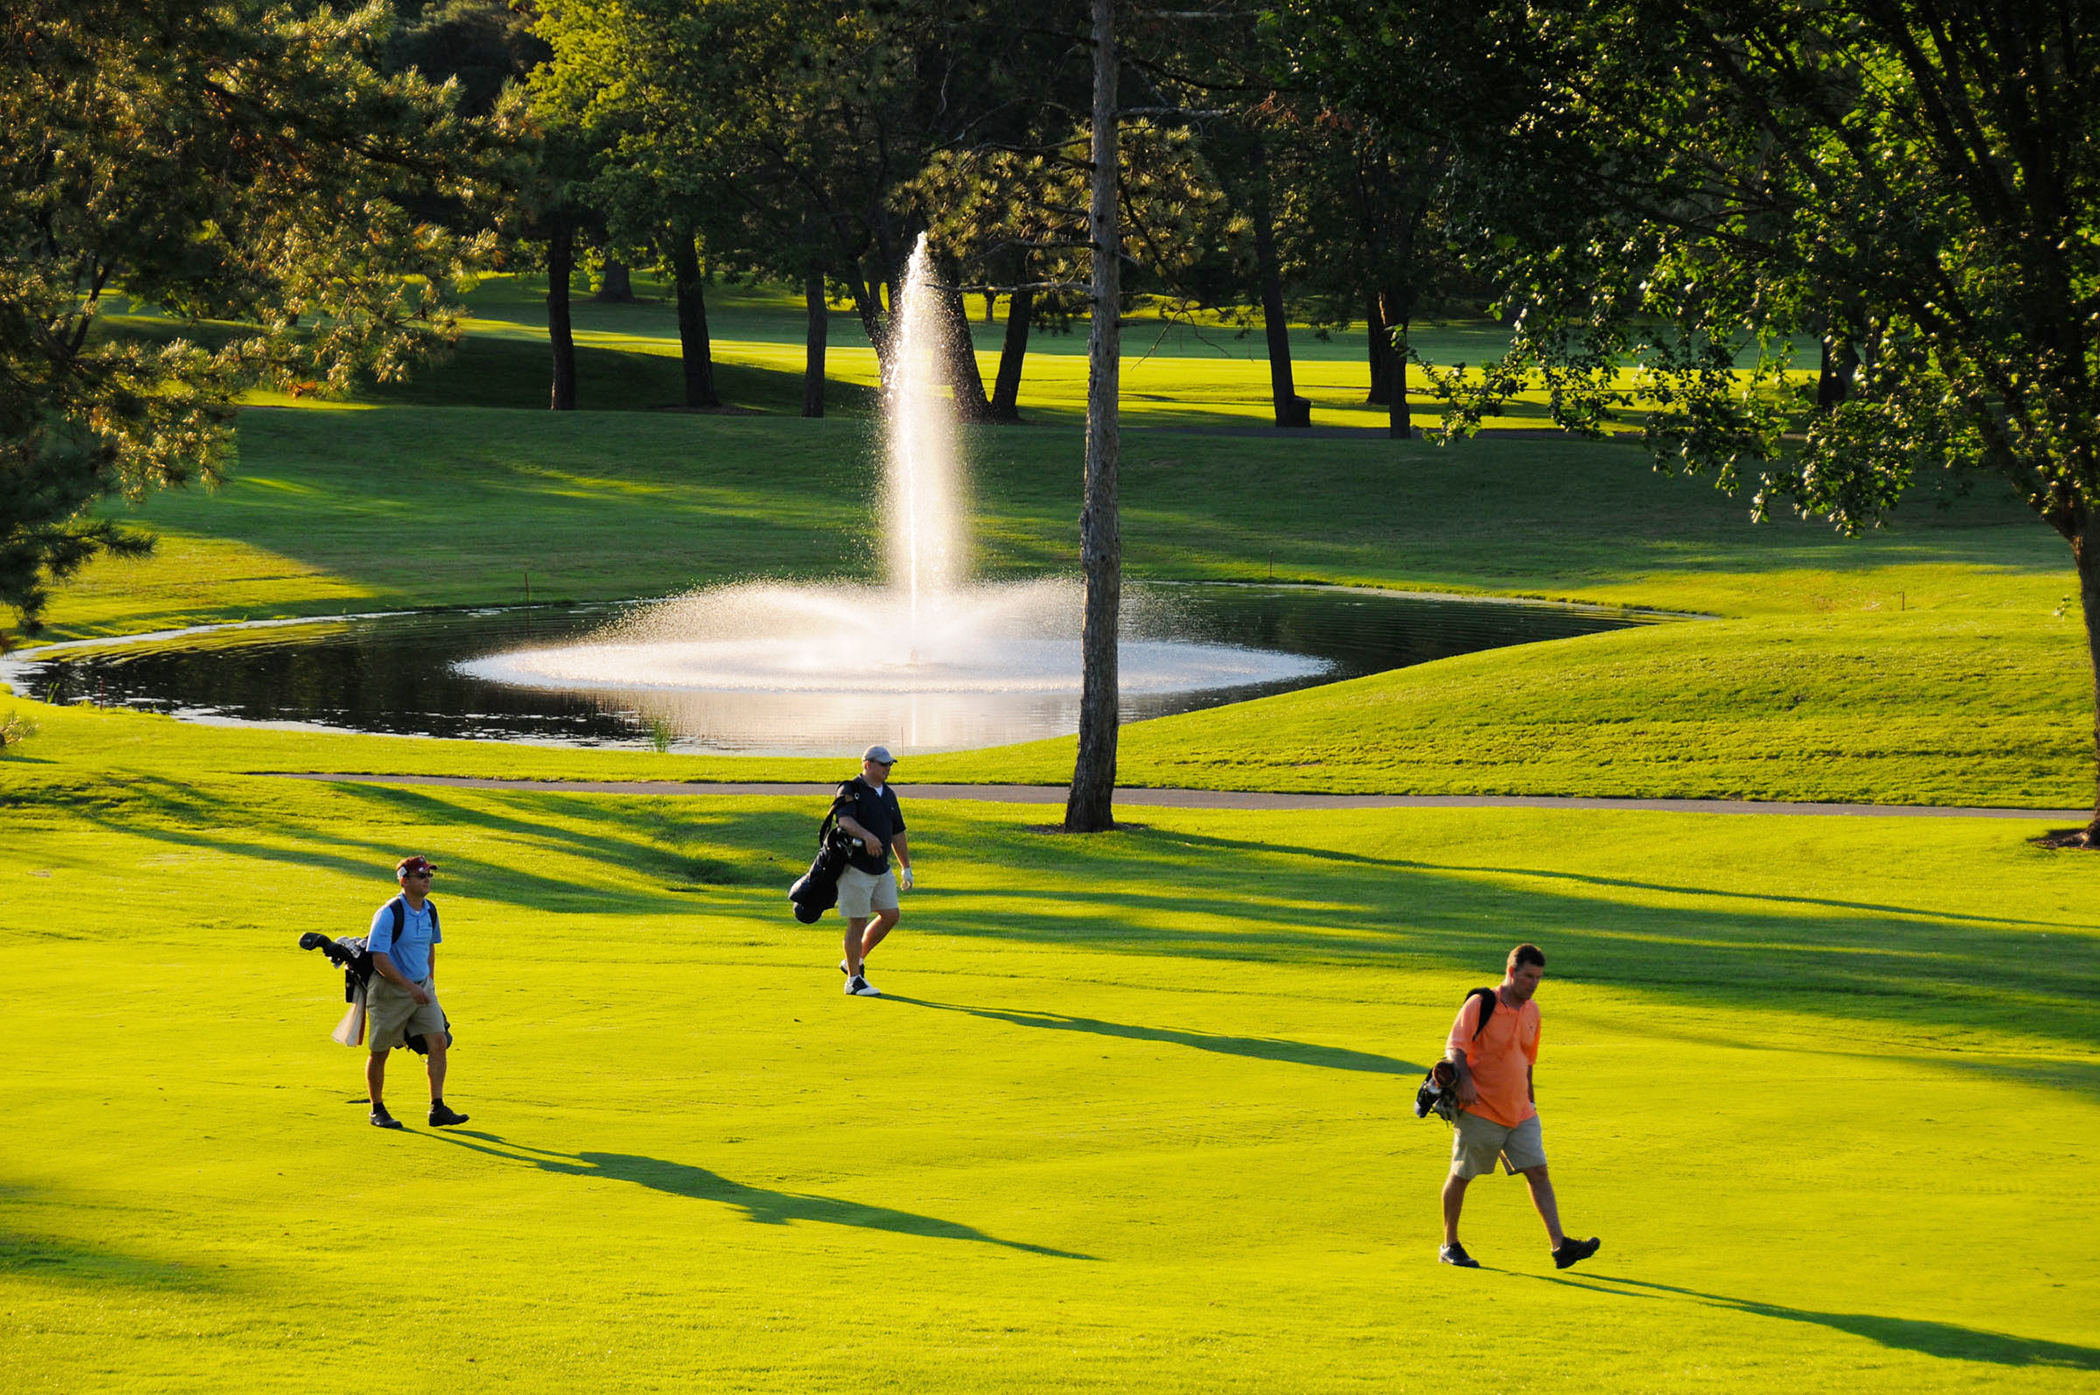 West Hartford, Connecticut. With two public golf courses, a skating rink, multiple pools, and America's oldest public rose garden, there's something for everyone here.